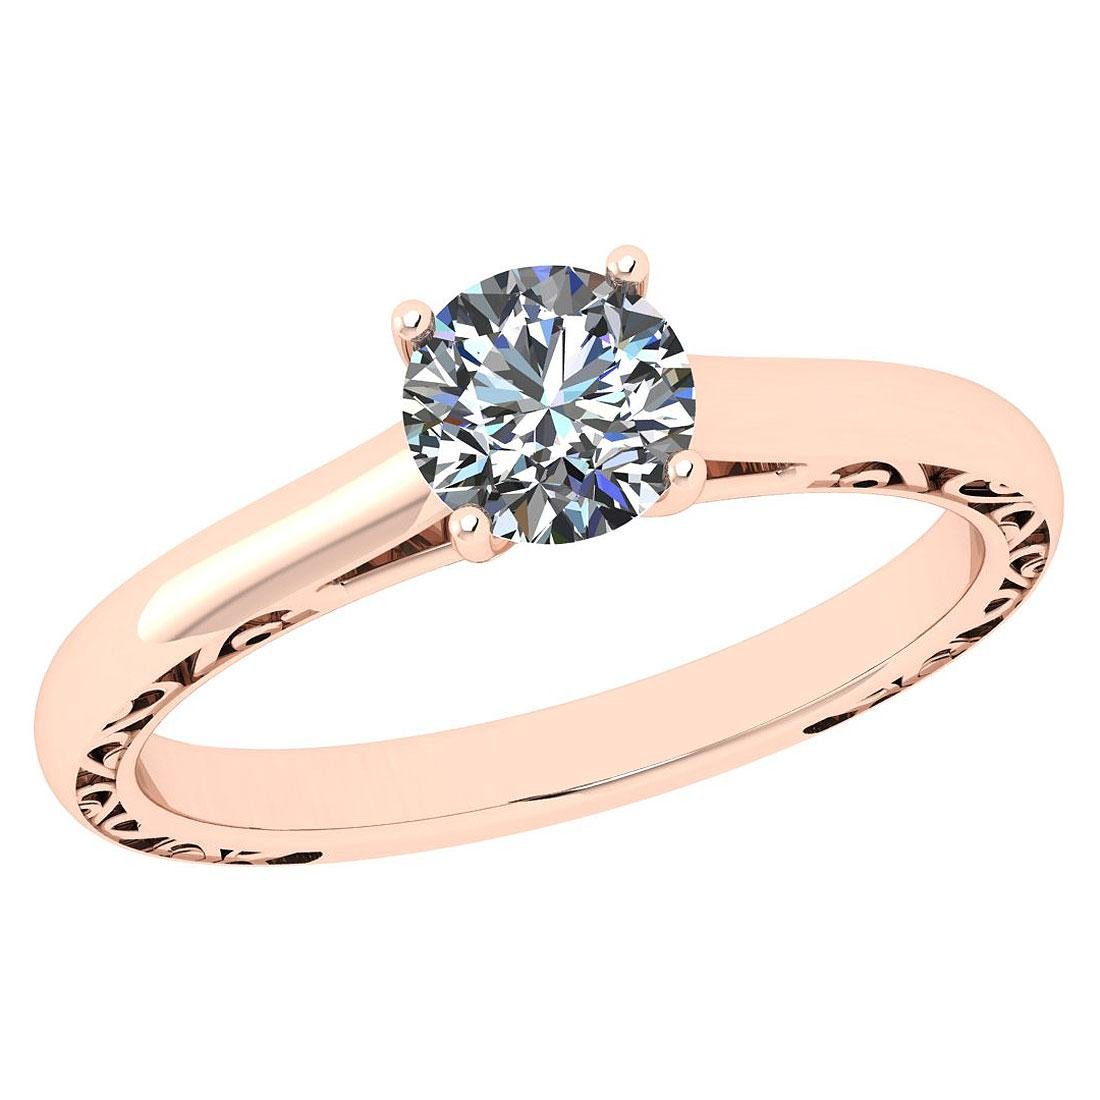 Certified Round 0.58 CTW J/VS2 Diamond Solitaire Ring I